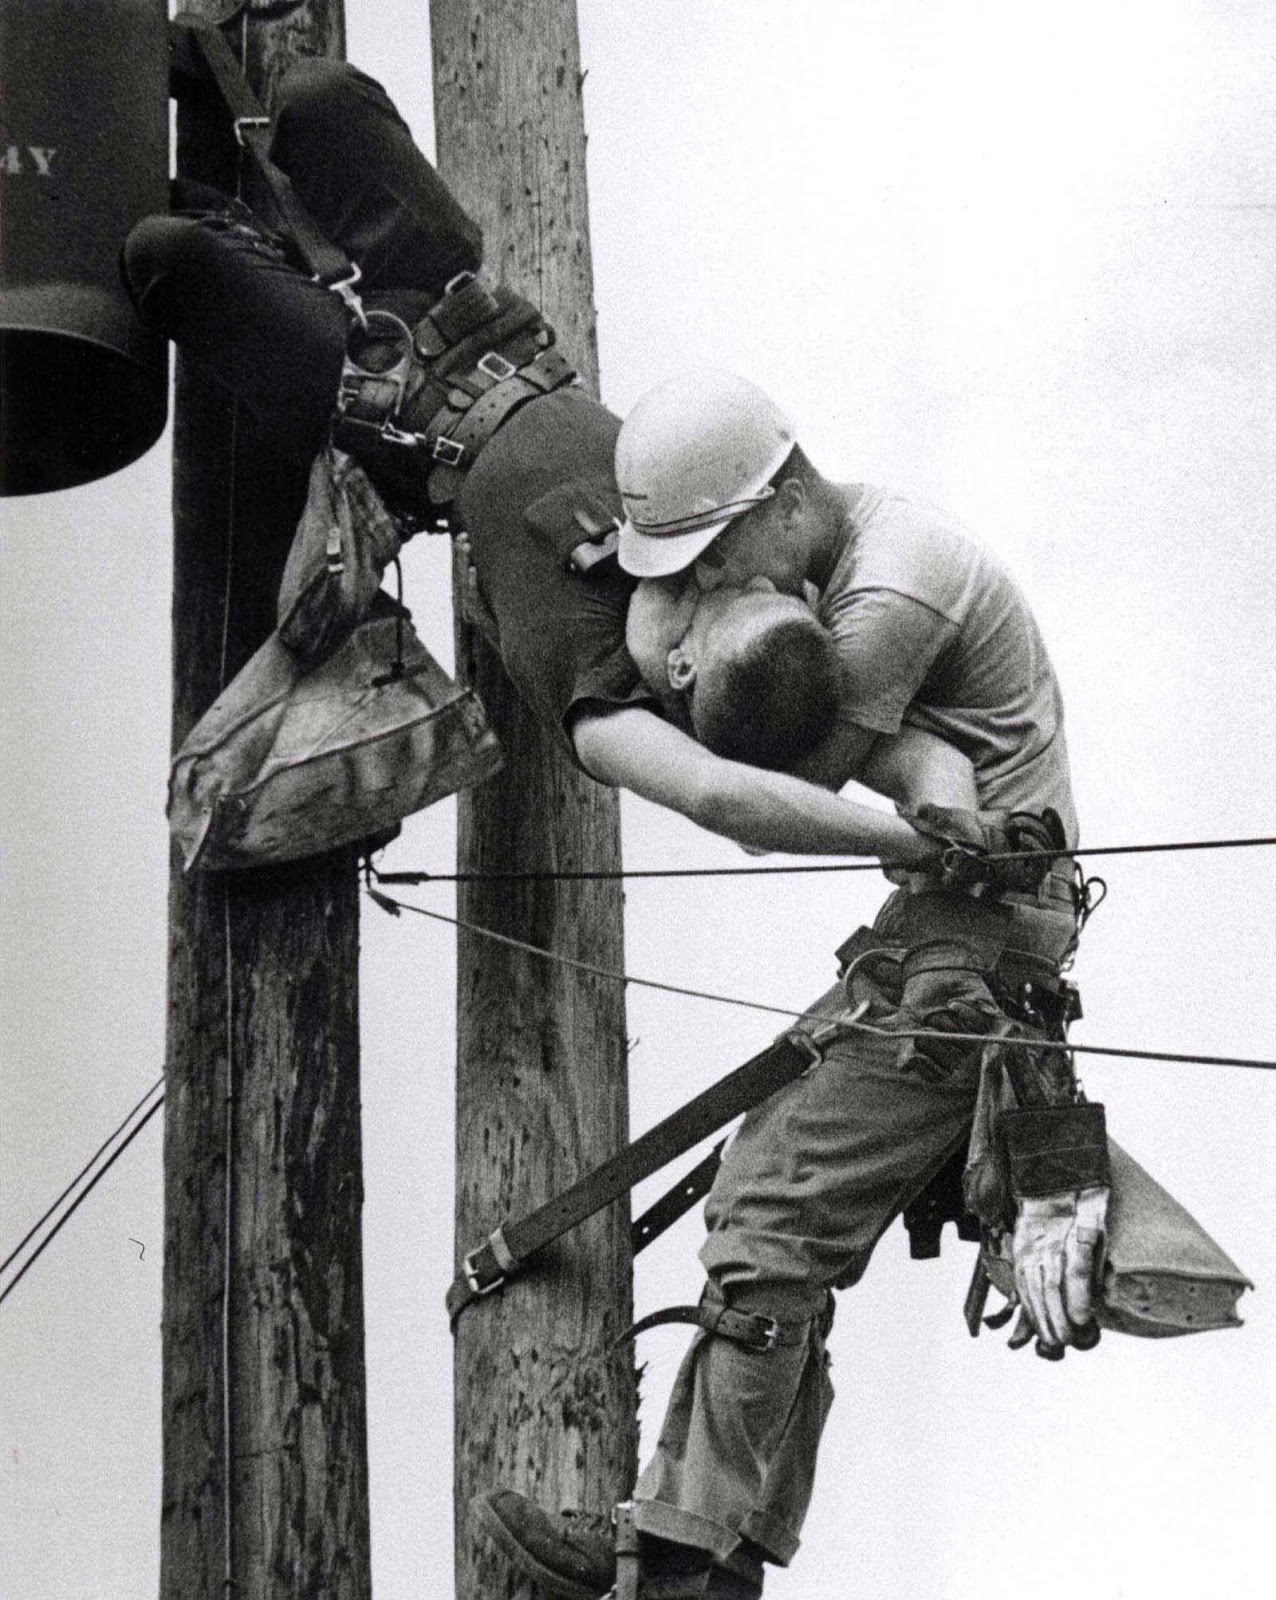 the-kiss-of-life-a-utility-worker-giving-mouth-to-mouth-to-co-worker-after-he-contacted-a-high-voltage-wire-1967